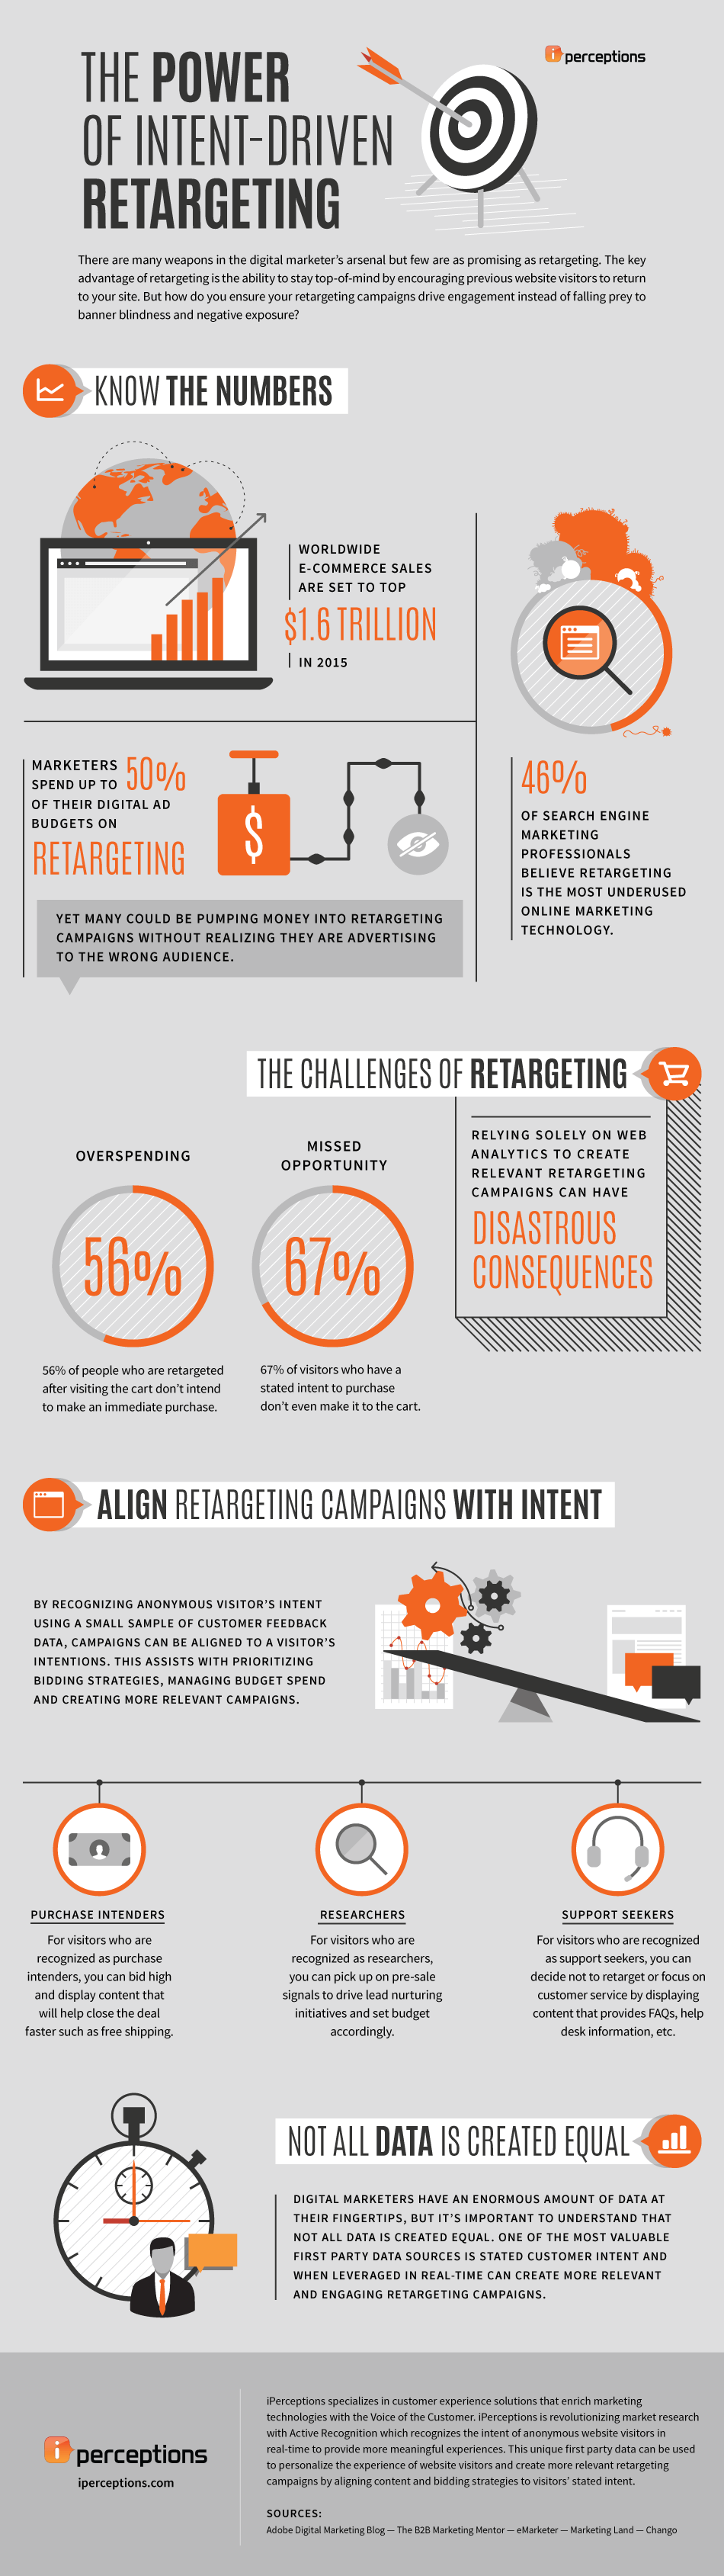 The Power of Intent Driven Retargeting #Infographic